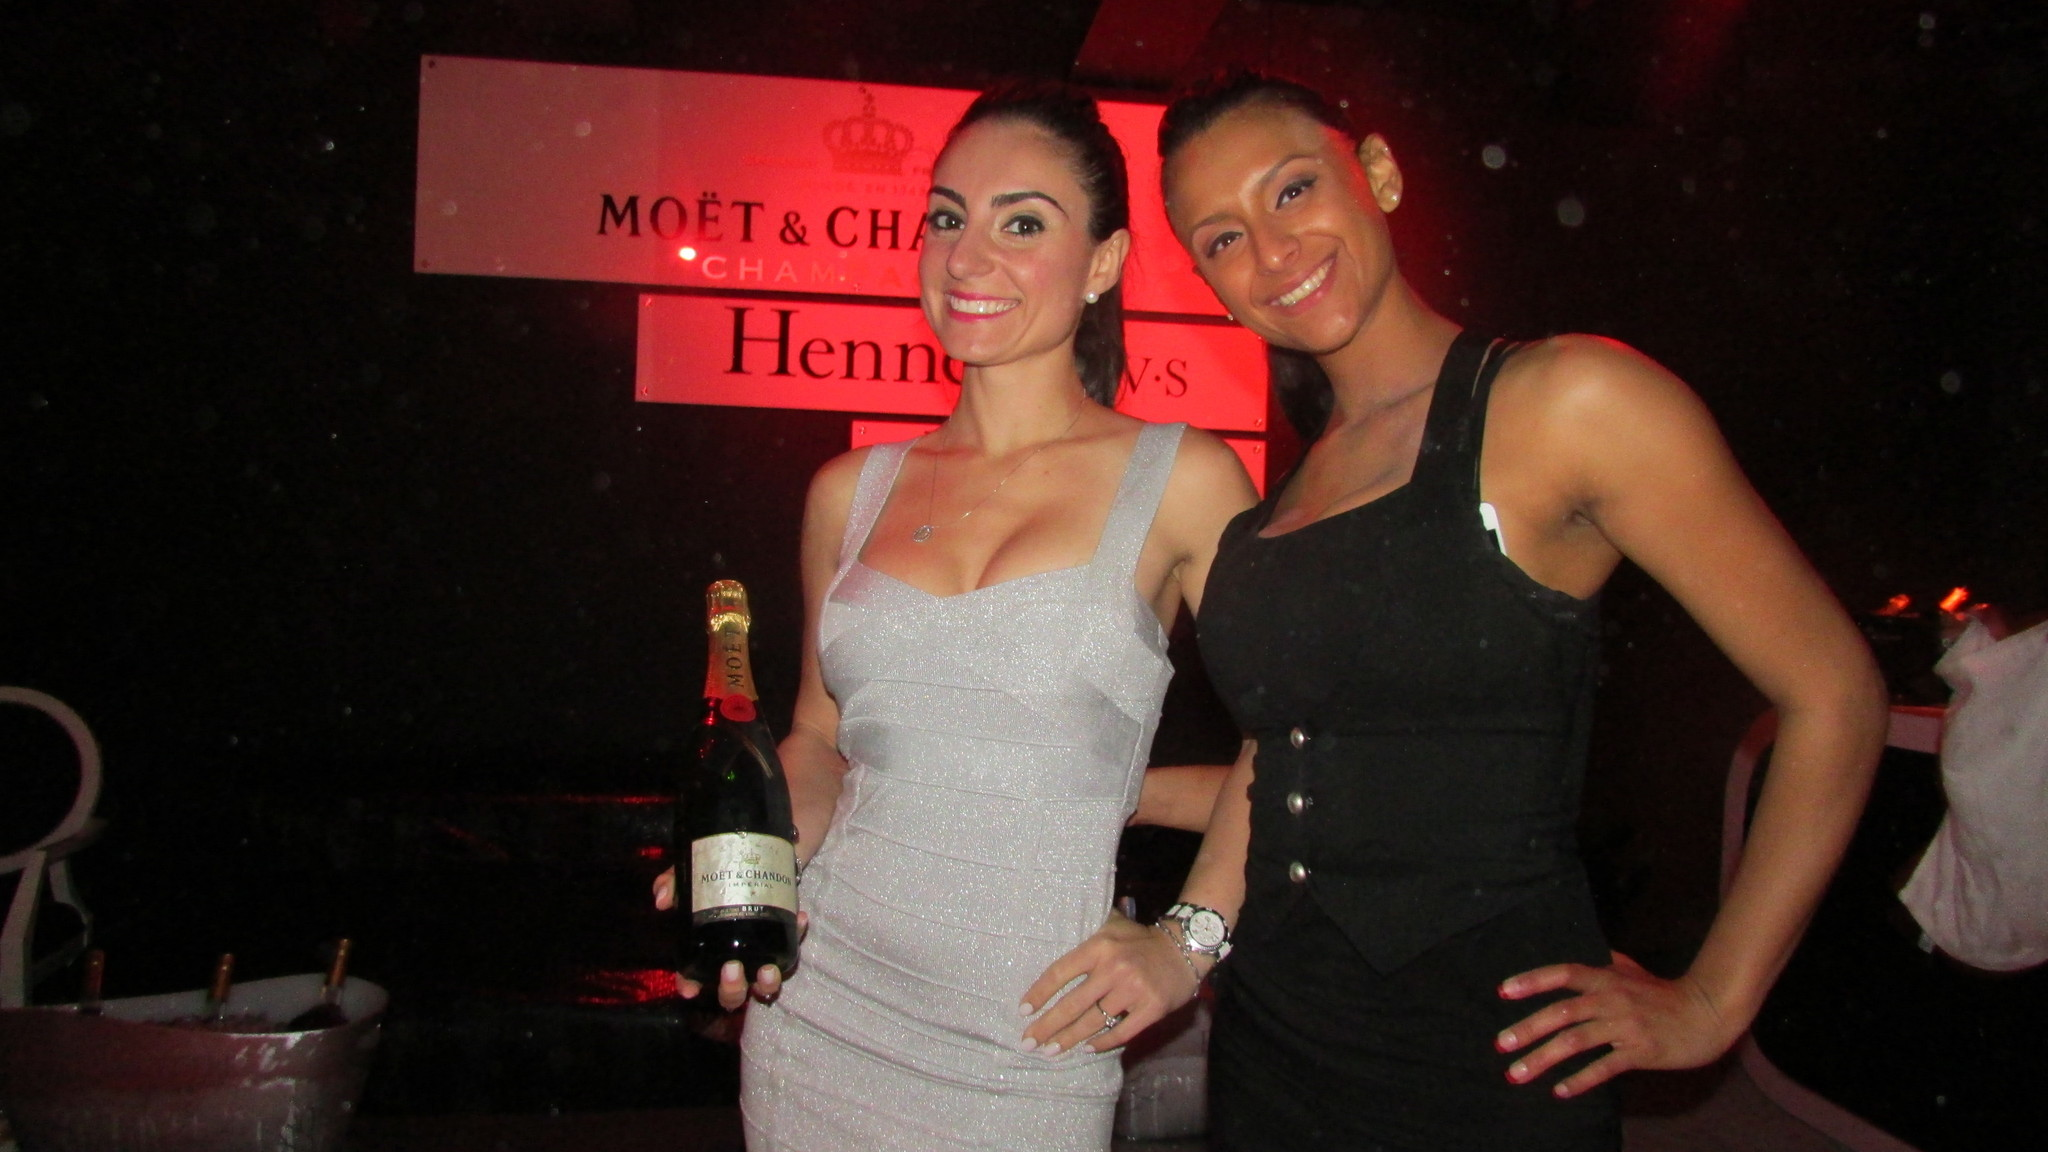 Spot your friends at SoBe Wine and Food Festival - Moet Hennessy